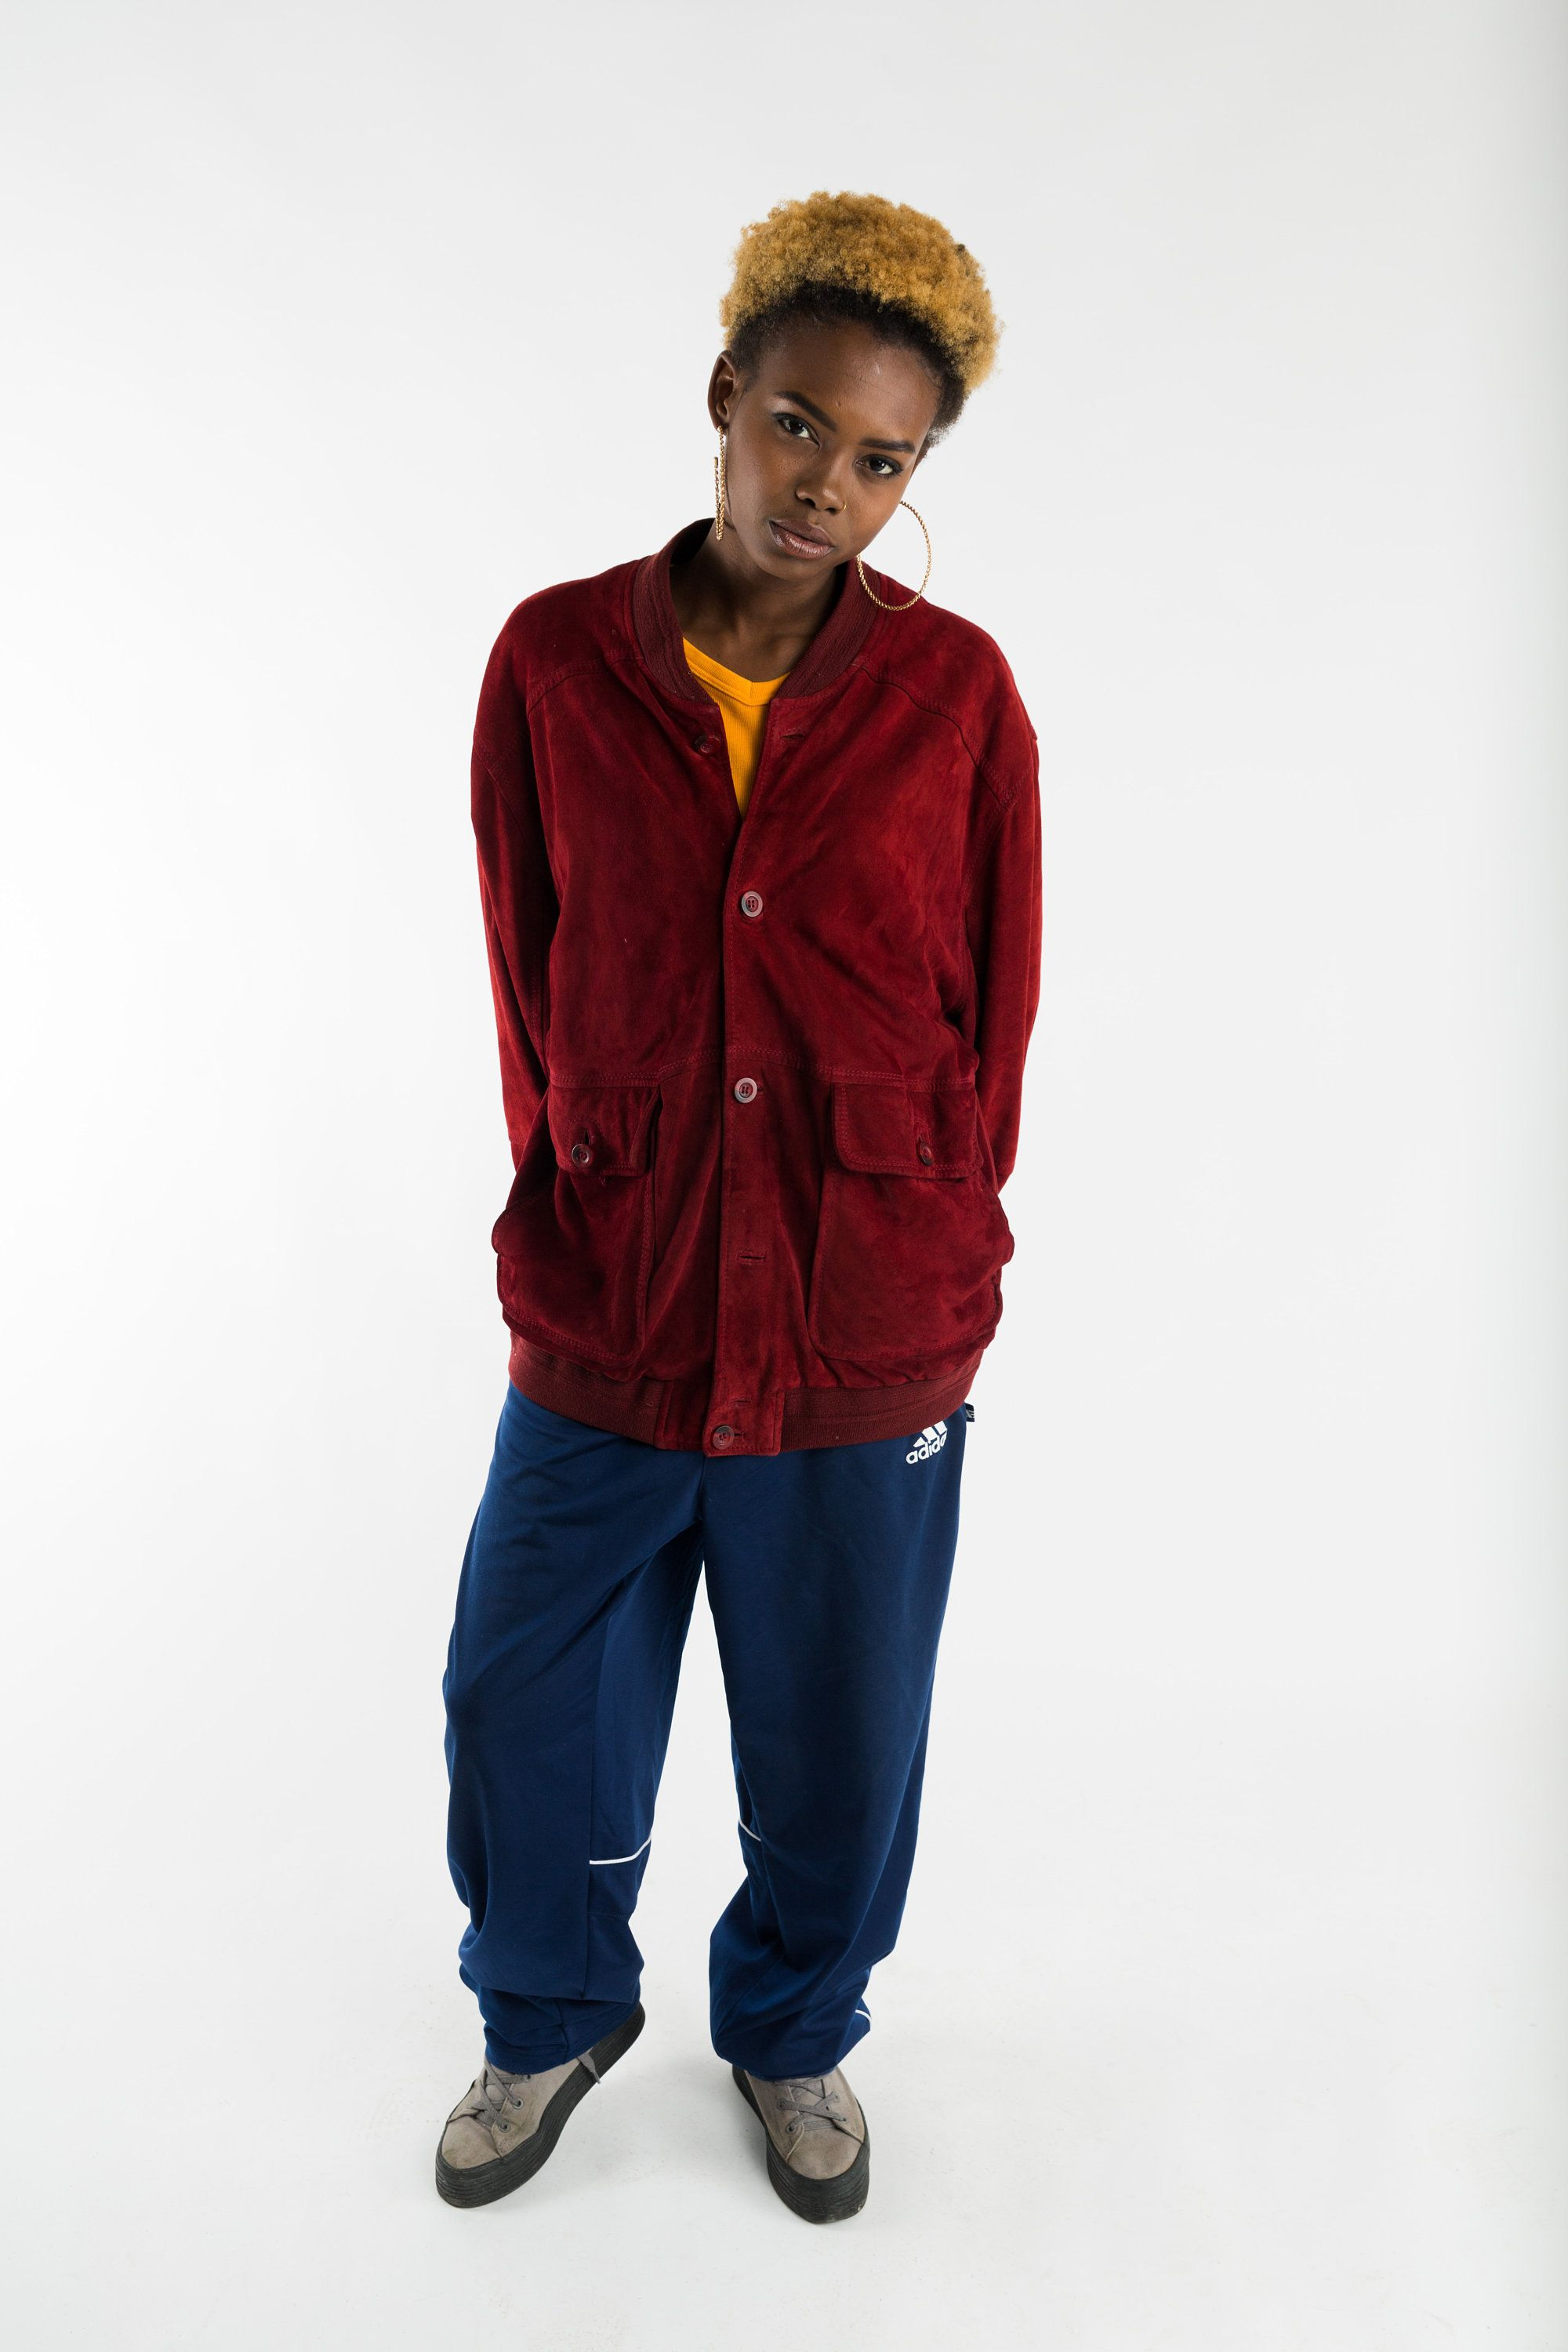 Suede oversized jacket / Vintage red suede blouson jacket